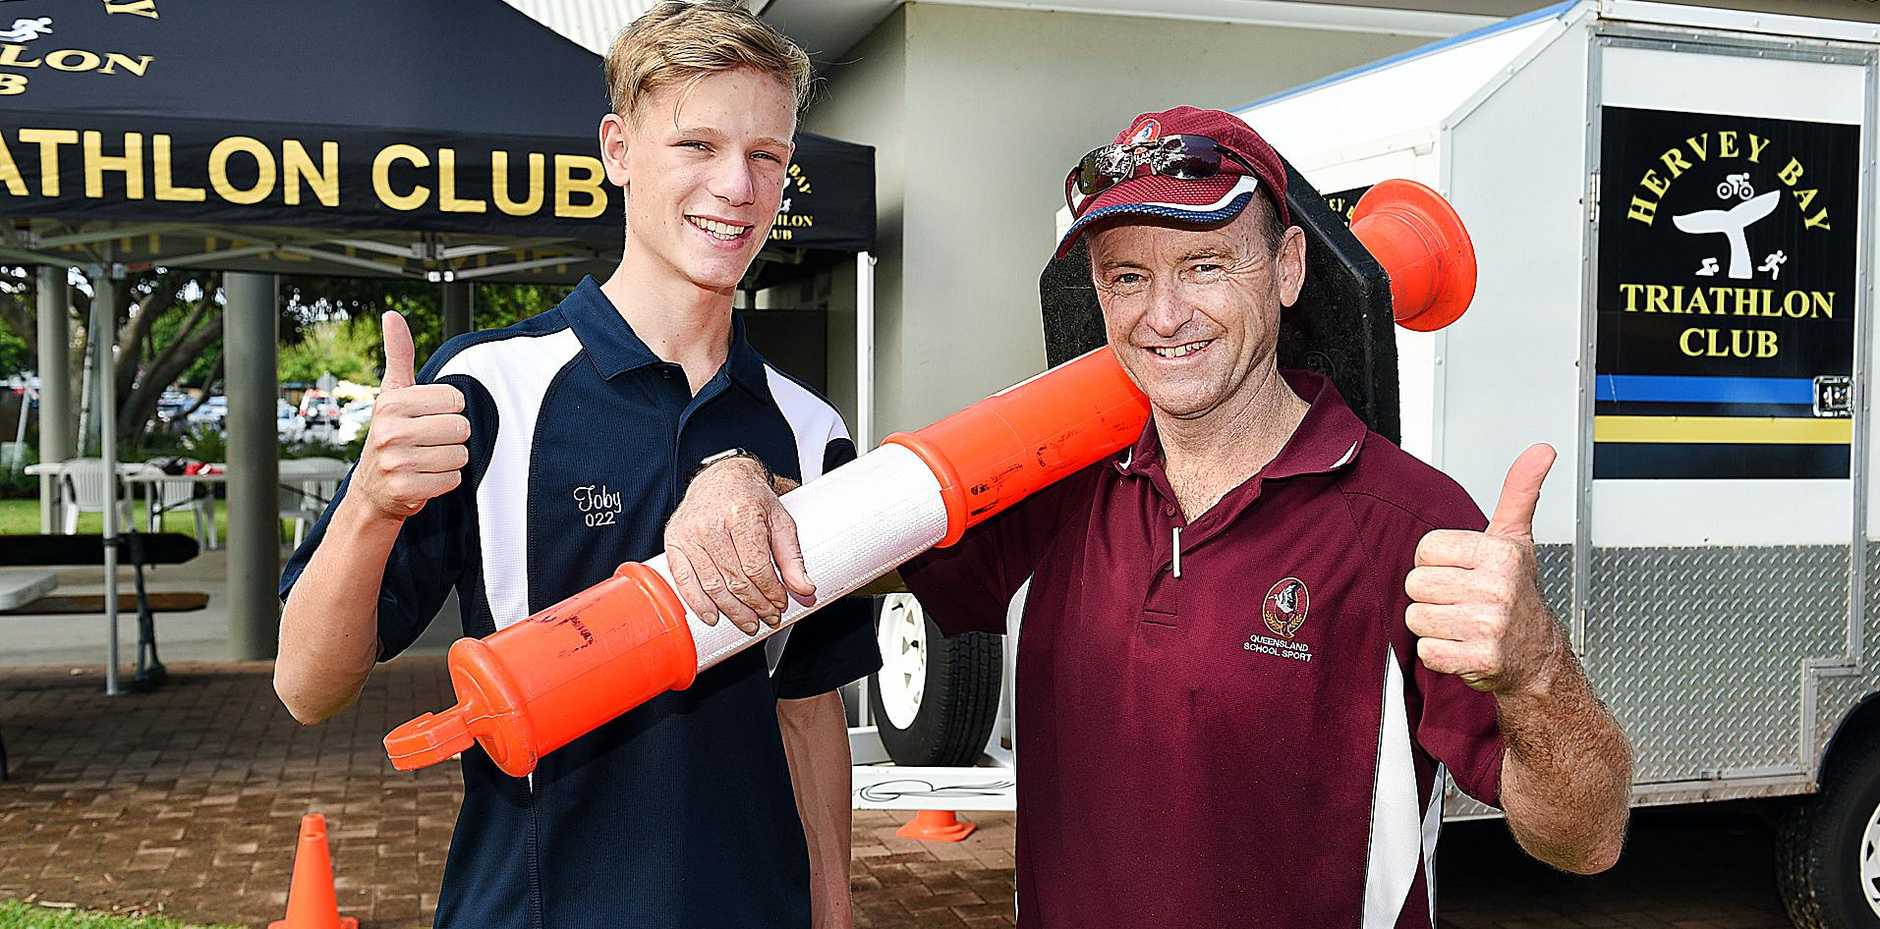 WORKING HARD: Getting ready for the Qld Schools State Triathlon at Torquay are Wide Bay triathlete Toby Powers and event organizer Brian Harrington.